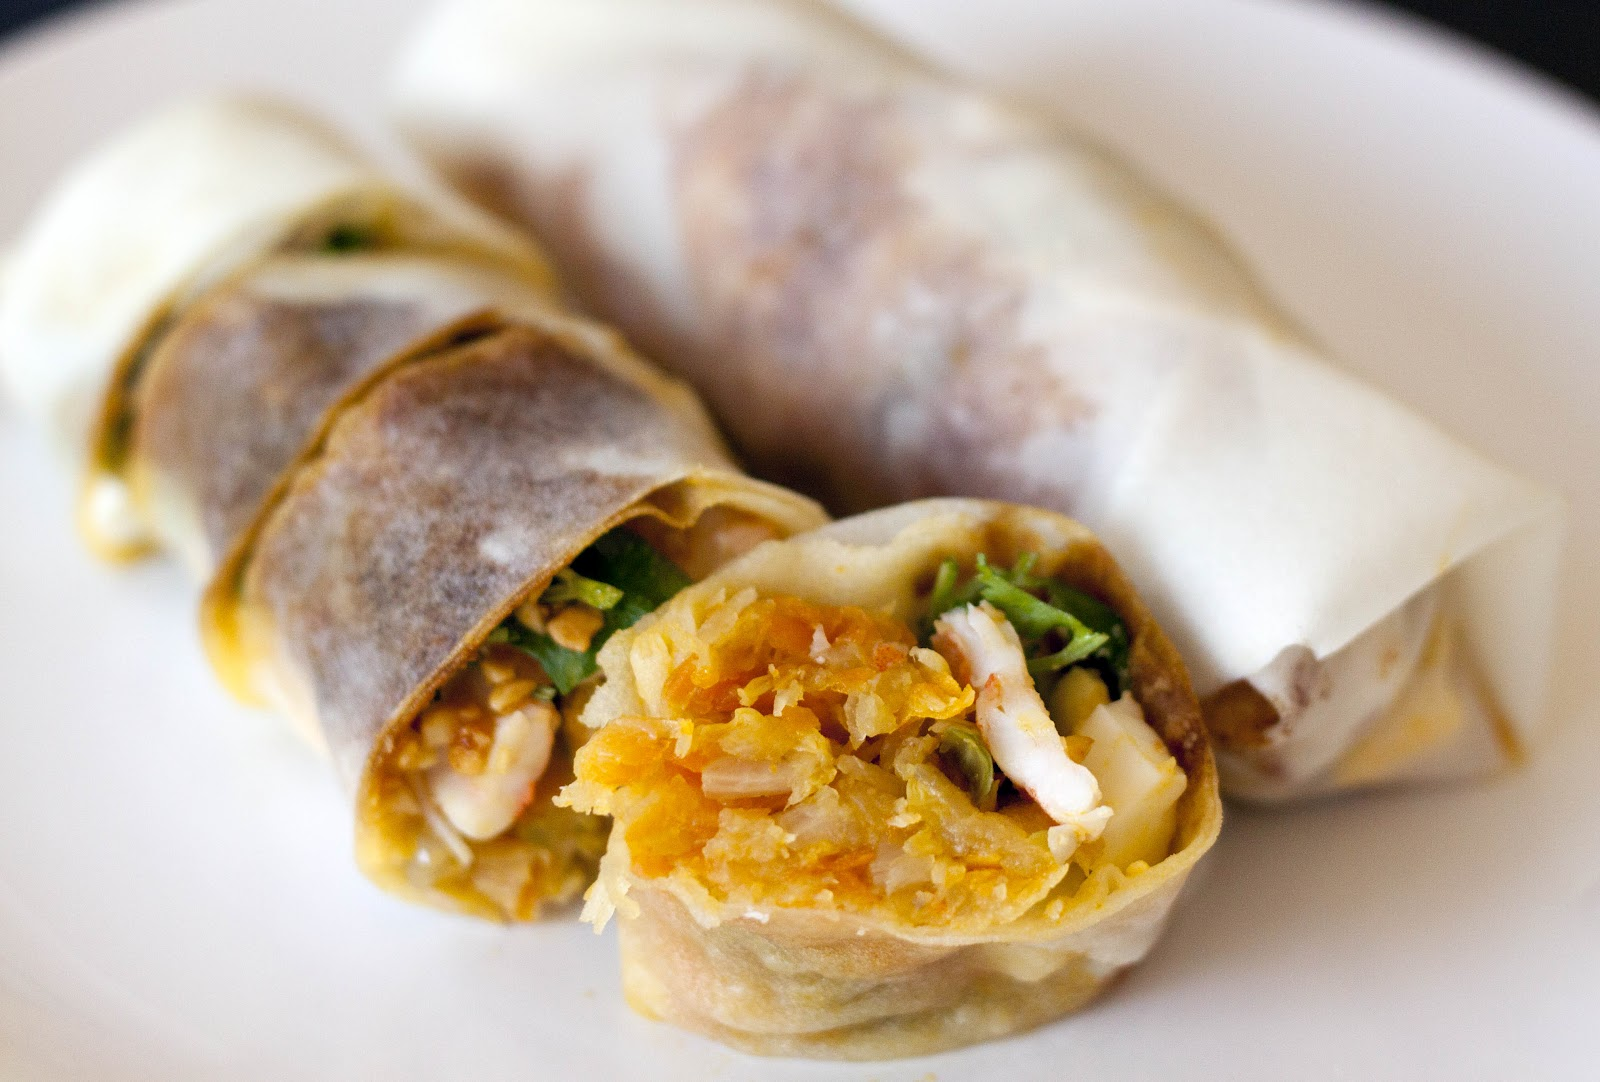 popiah roll skin wrapper snack singapore malaysia traditional hawker street food filing meat vegetables minced pork